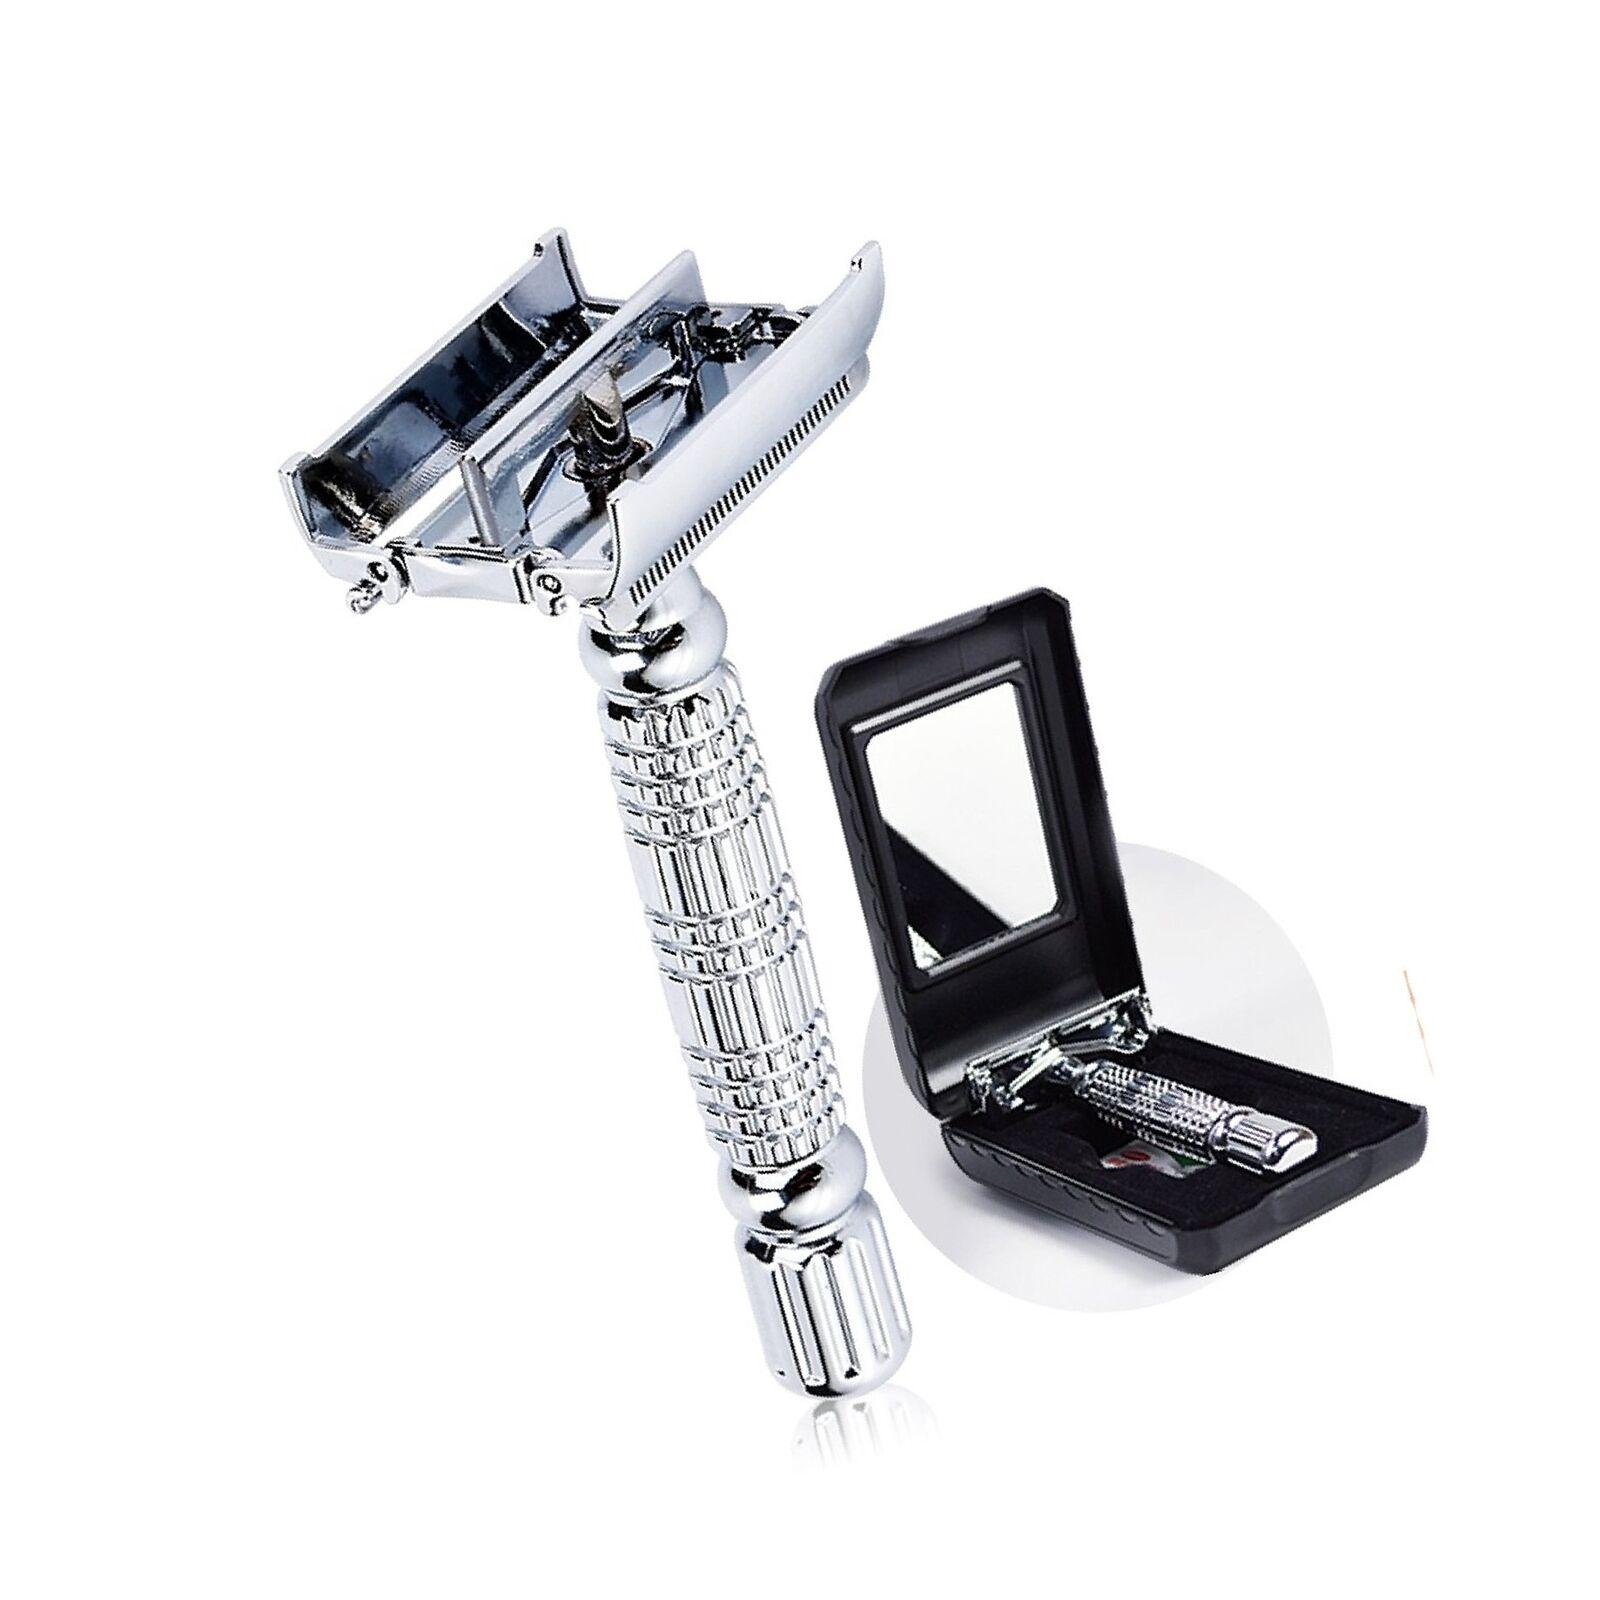 Barber Safety Blade Razor Shaver Double Edge Butterfly Twist Open T-Shaped Unisex 1 Travel Case with Mirror